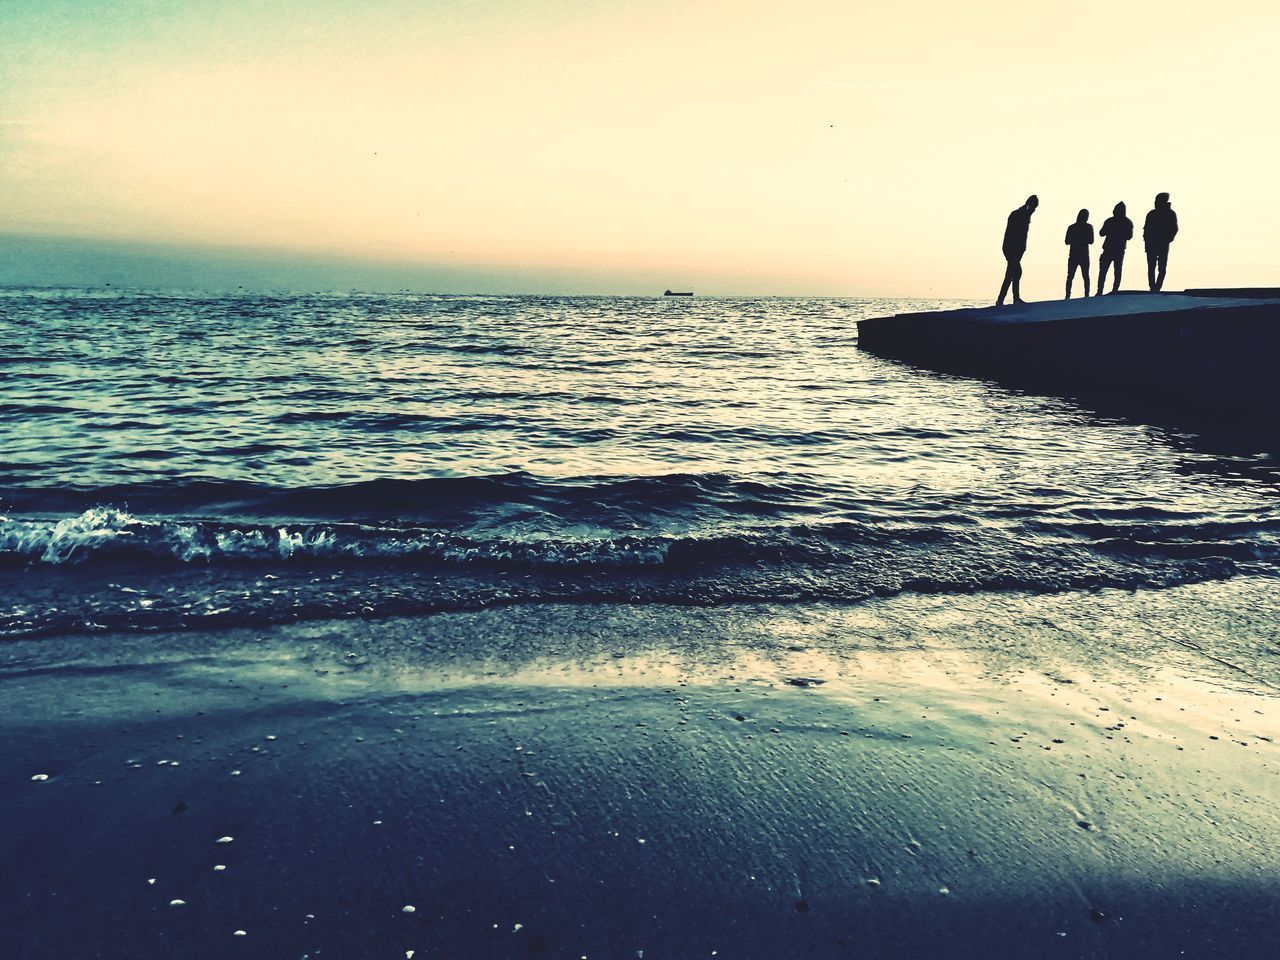 sea, water, sky, beach, horizon, land, horizon over water, beauty in nature, silhouette, sunset, scenics - nature, real people, group of people, nature, leisure activity, people, lifestyles, men, motion, outdoors